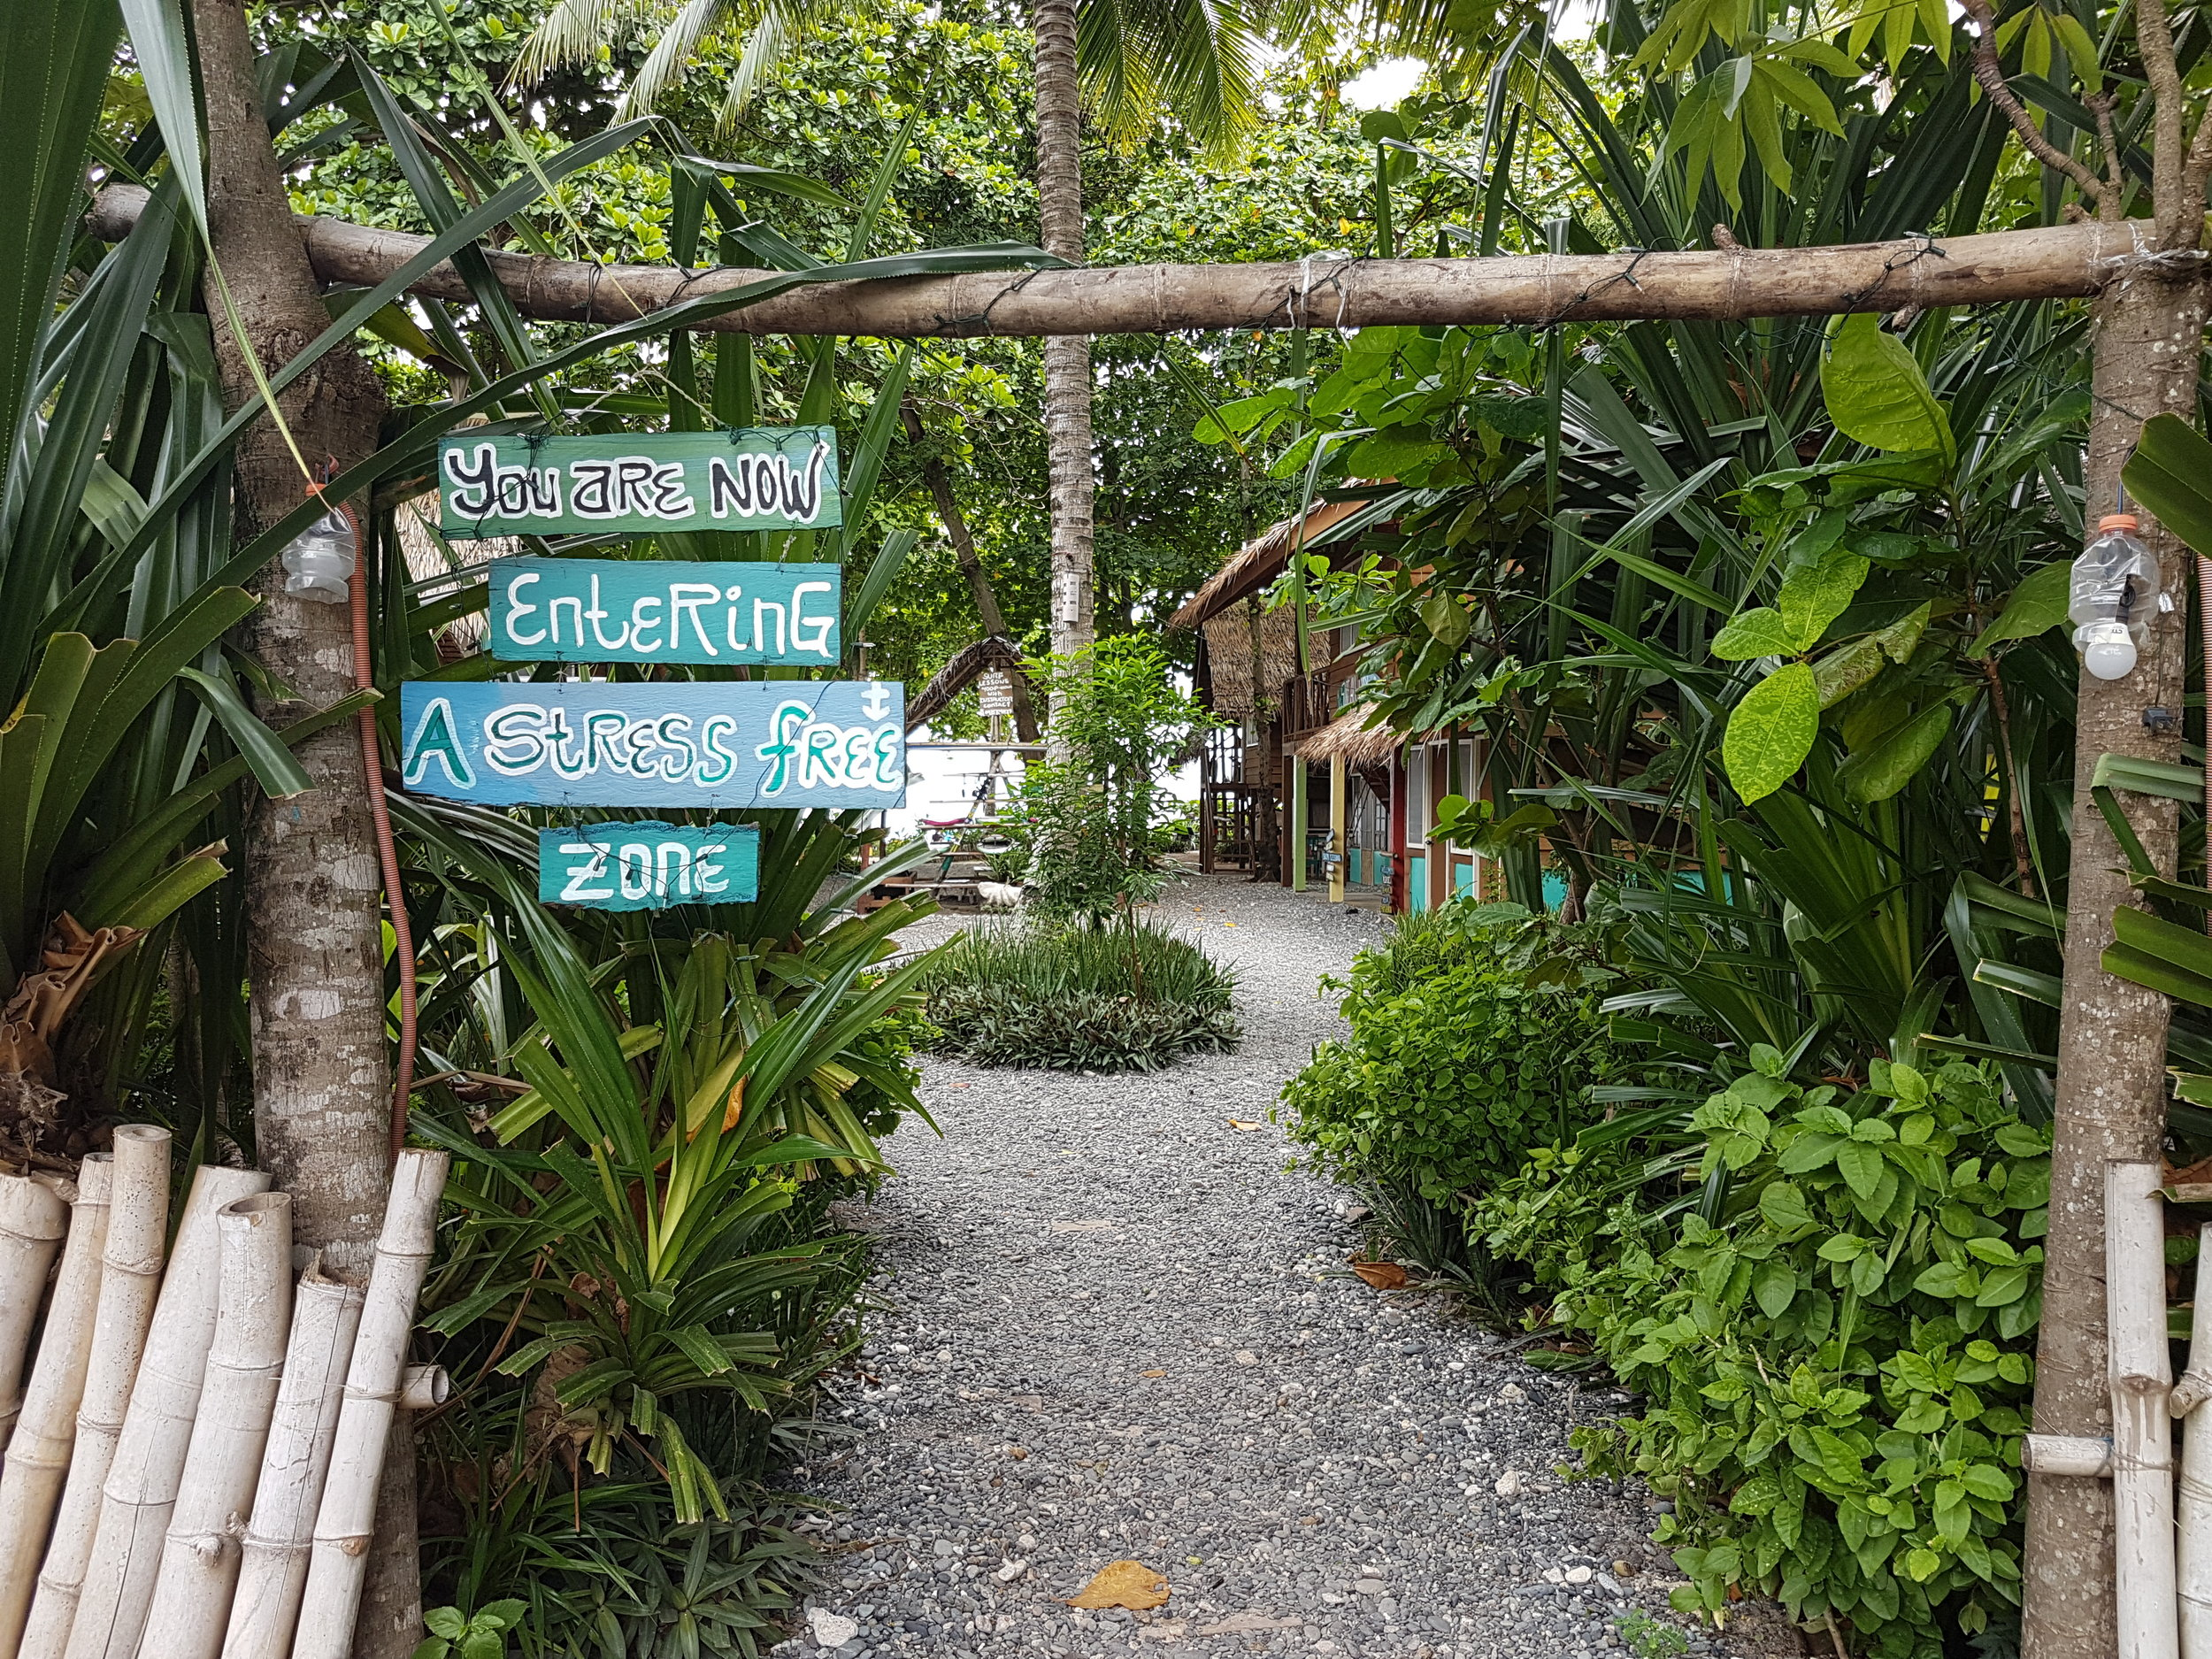 I think this sign says it all. Welcome to the stress-free side of Davao Oriental.